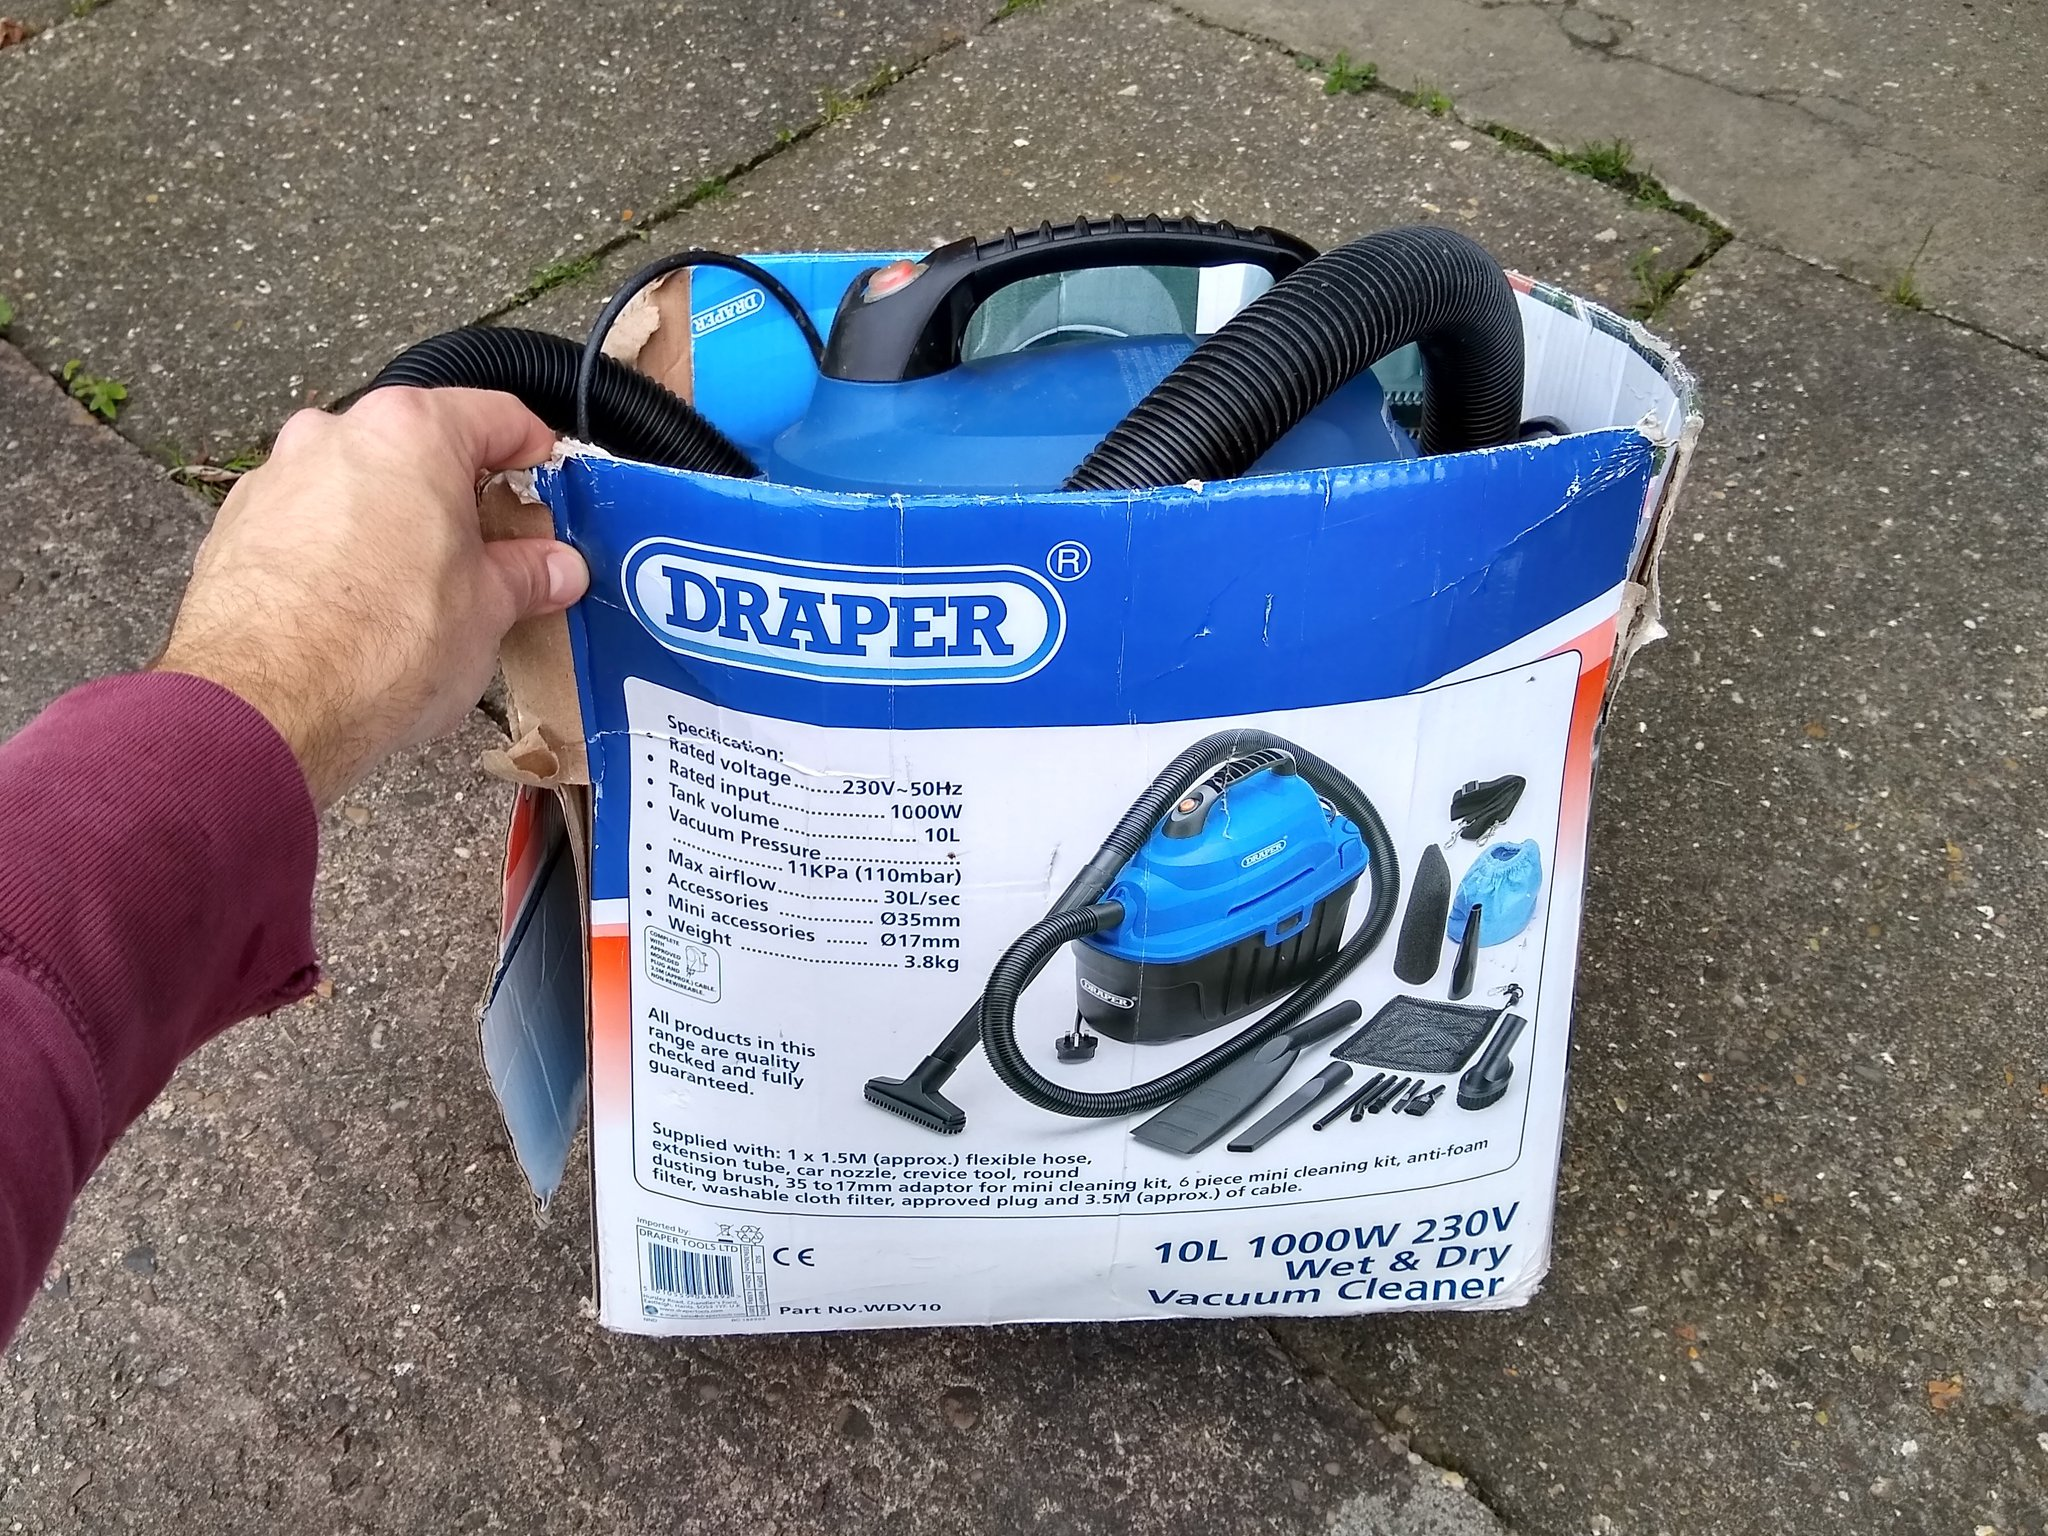 vacuum, wet dry vac, wet dry vacuum, draper, tools, cars, working on cars, diy, not2grand, not 2 grand, n2g, not2grand.co.uk